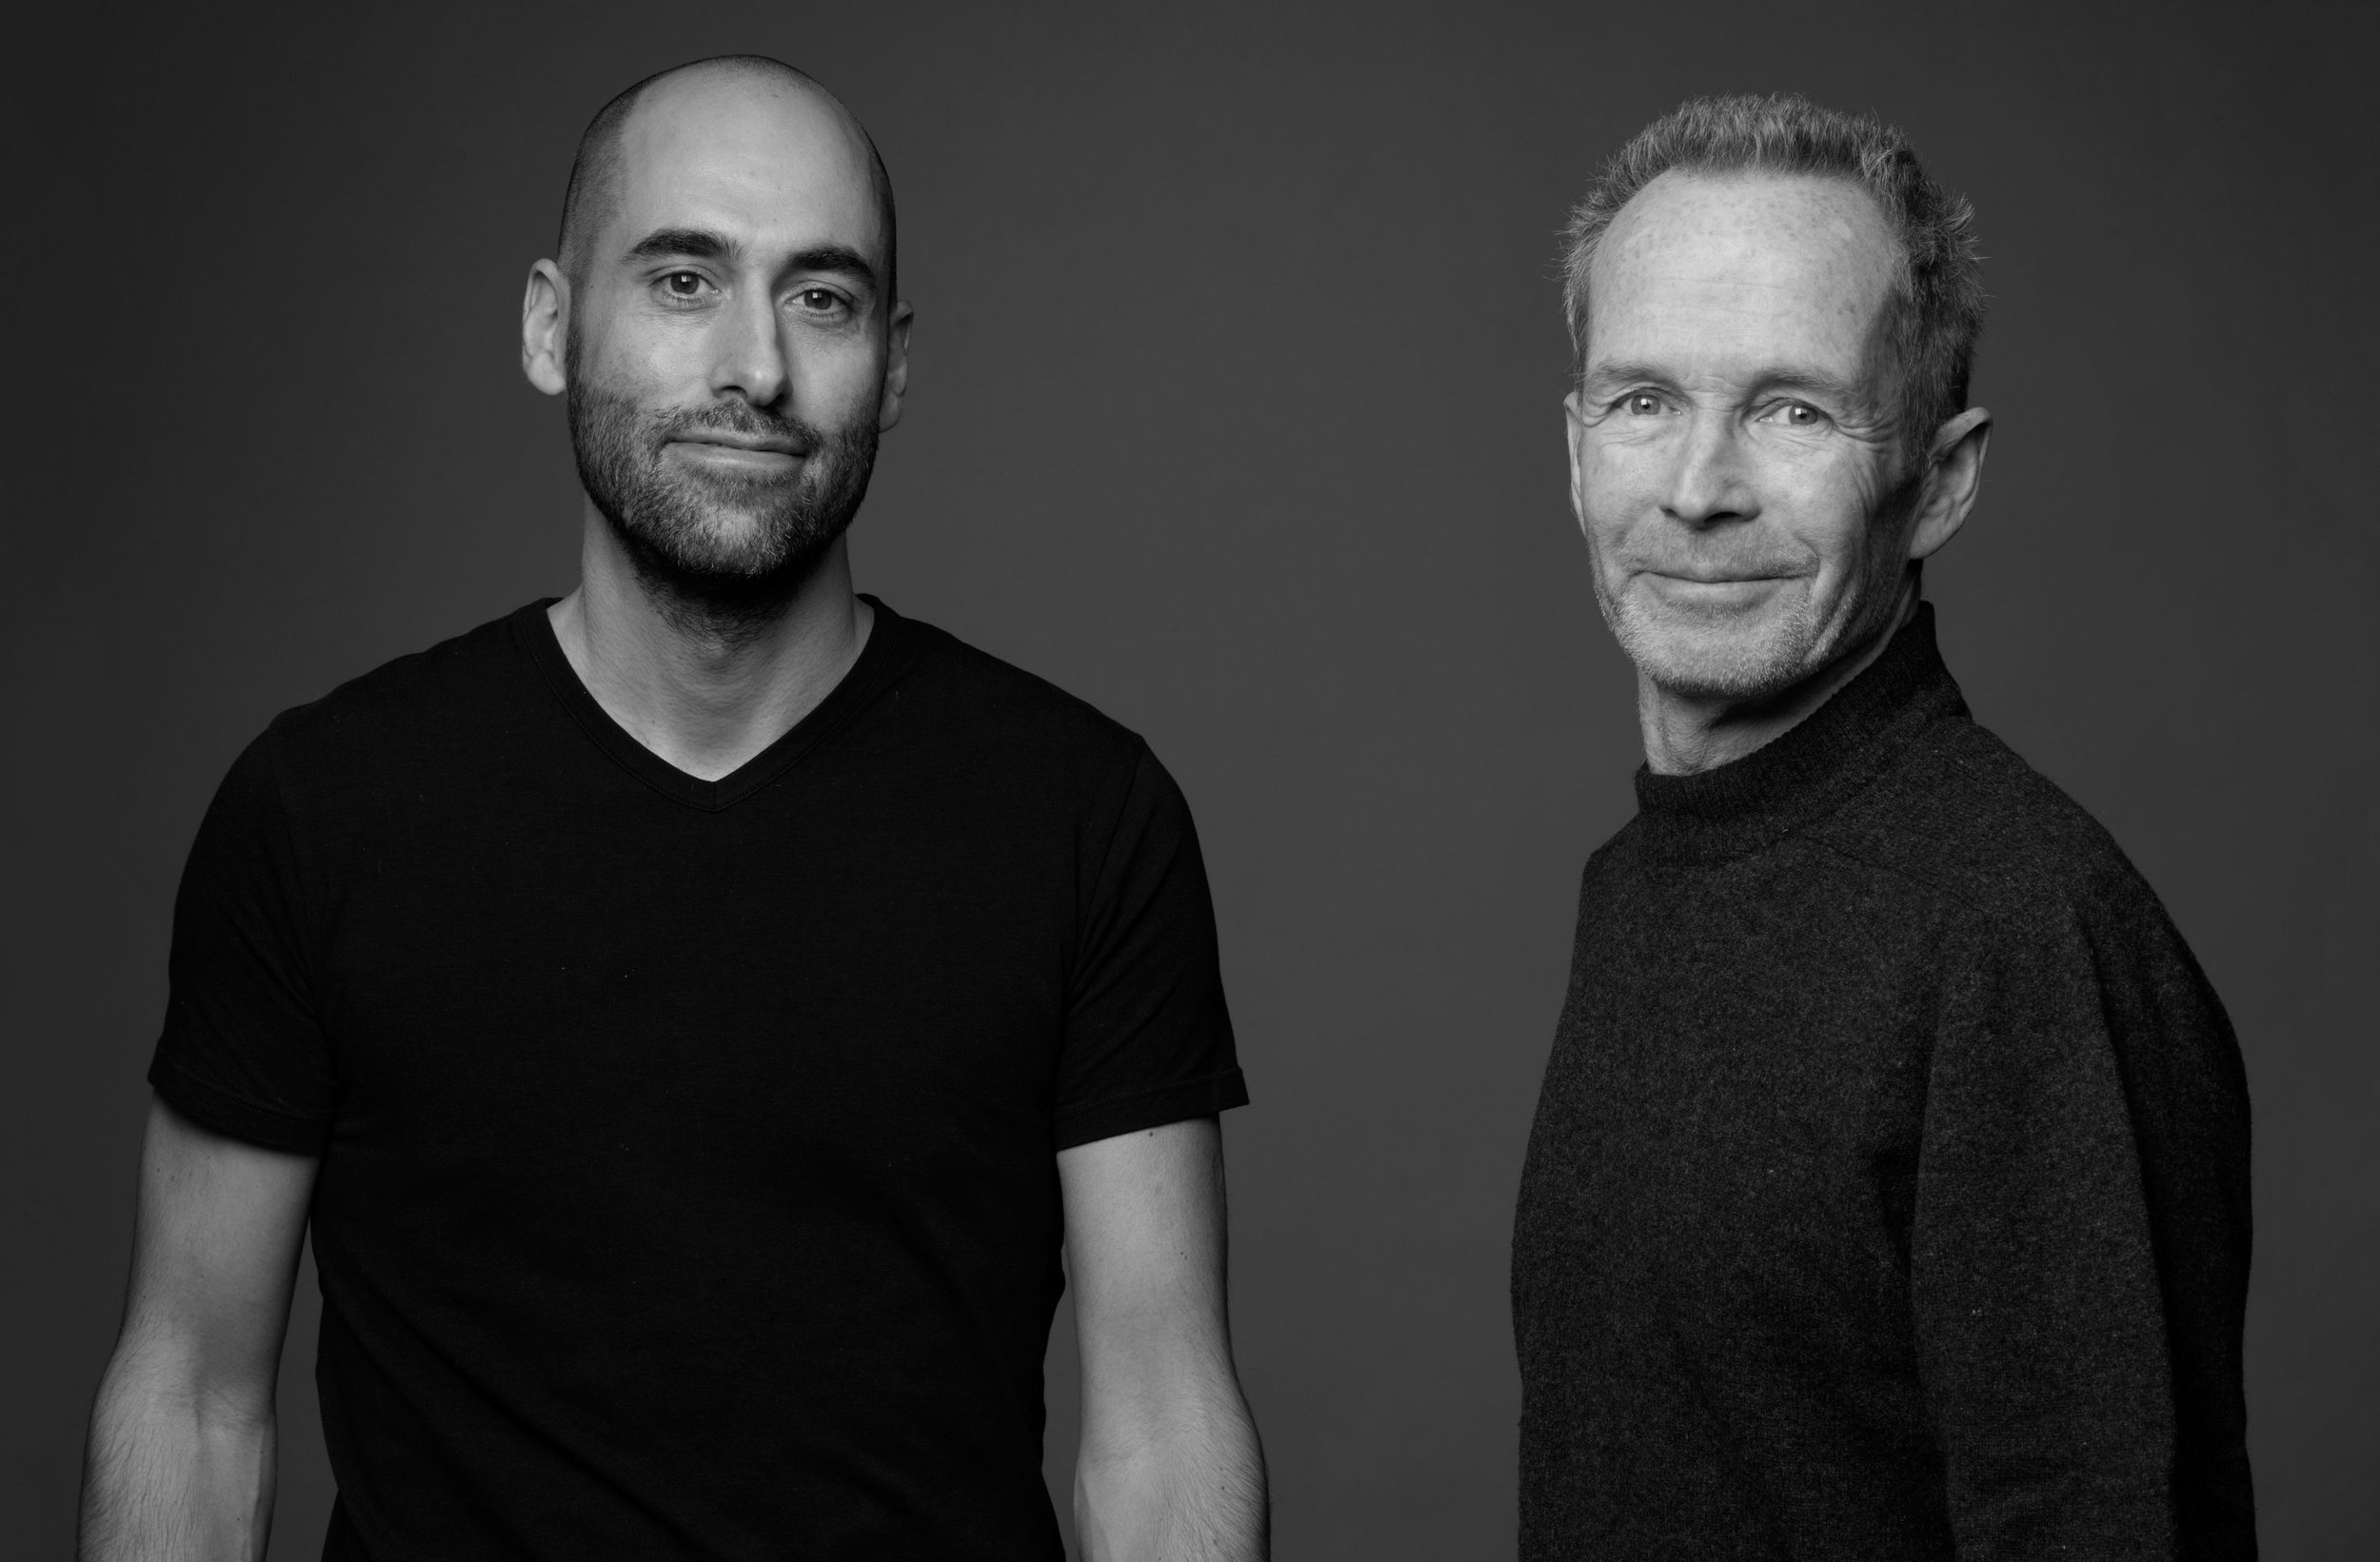 The Co-Founders of o4i Design Studio; Henrik Kjellberg and Jon Lindström.